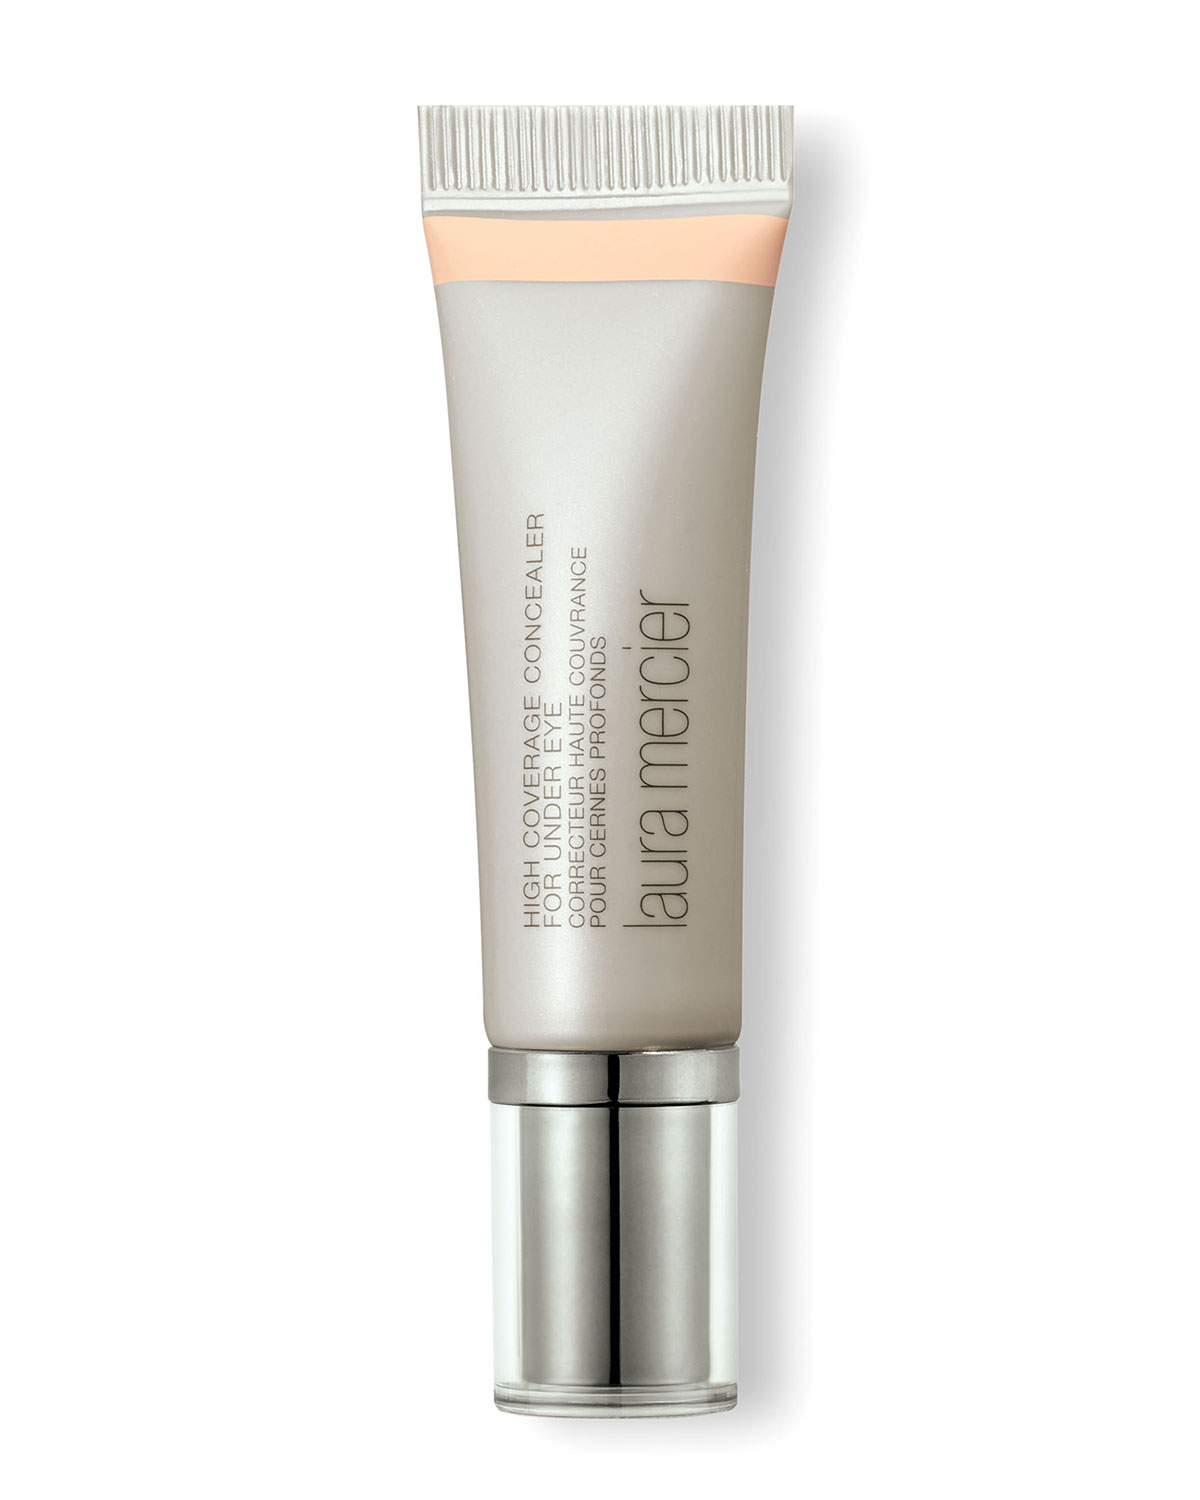 High Coverage Concealer For Under Eye - Laura Mercier